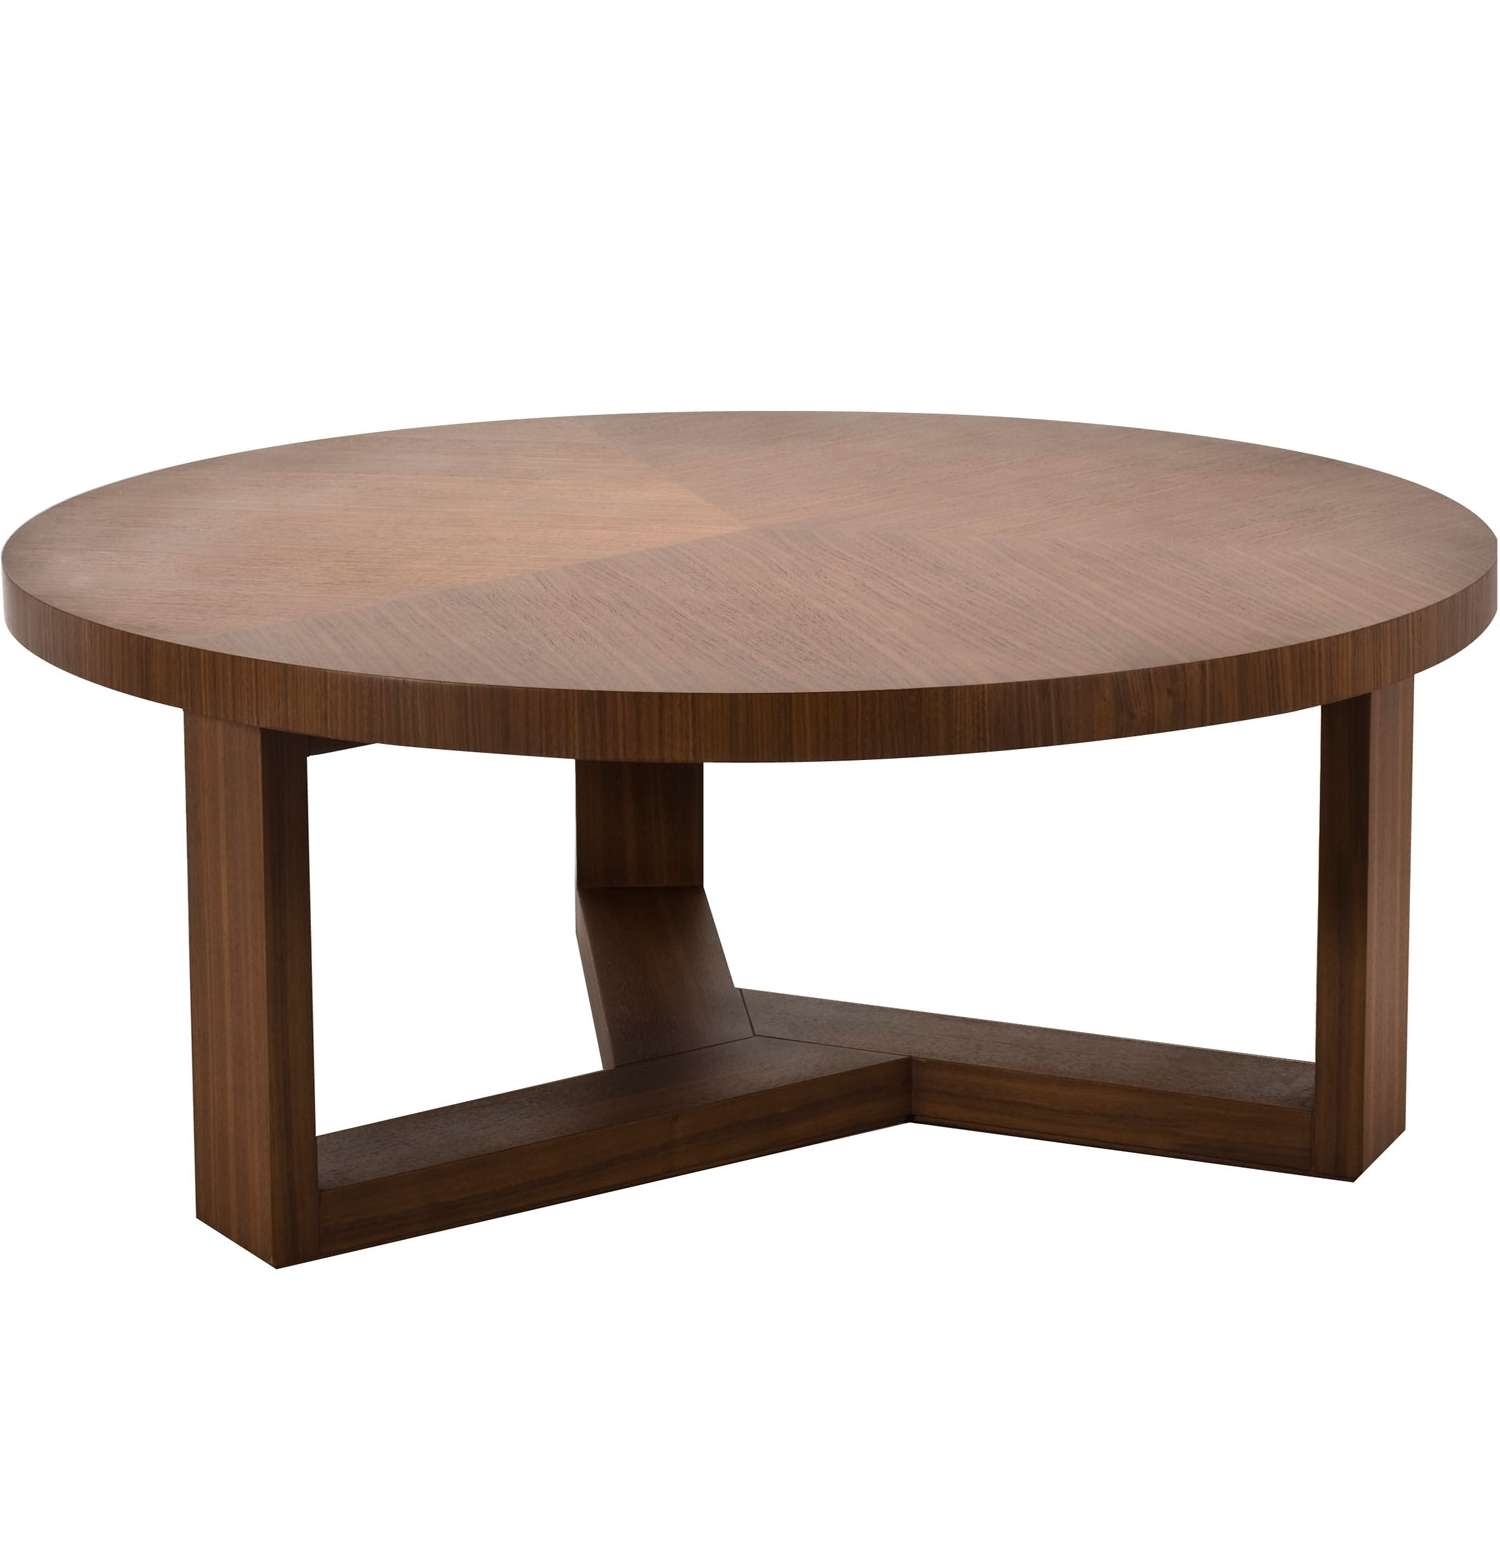 Well Liked Small Circular Coffee Table For Coffee Tables : Round Table Coffee Glass Top Circle Square And (View 19 of 20)